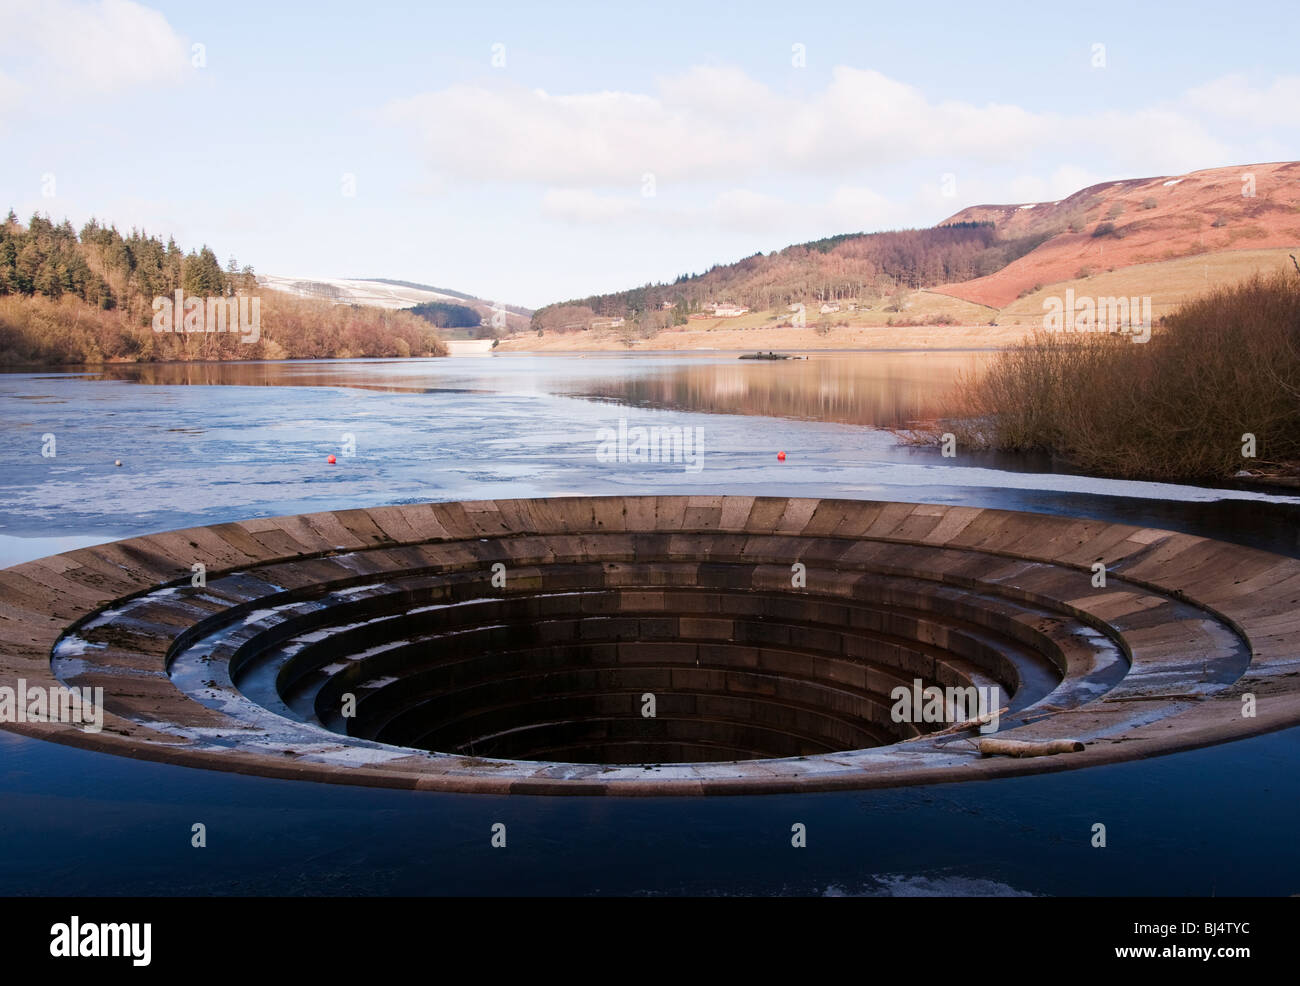 The overflow at Ladybower Reservoir in the Peak District National Park, also known as the plug hole. - Stock Image